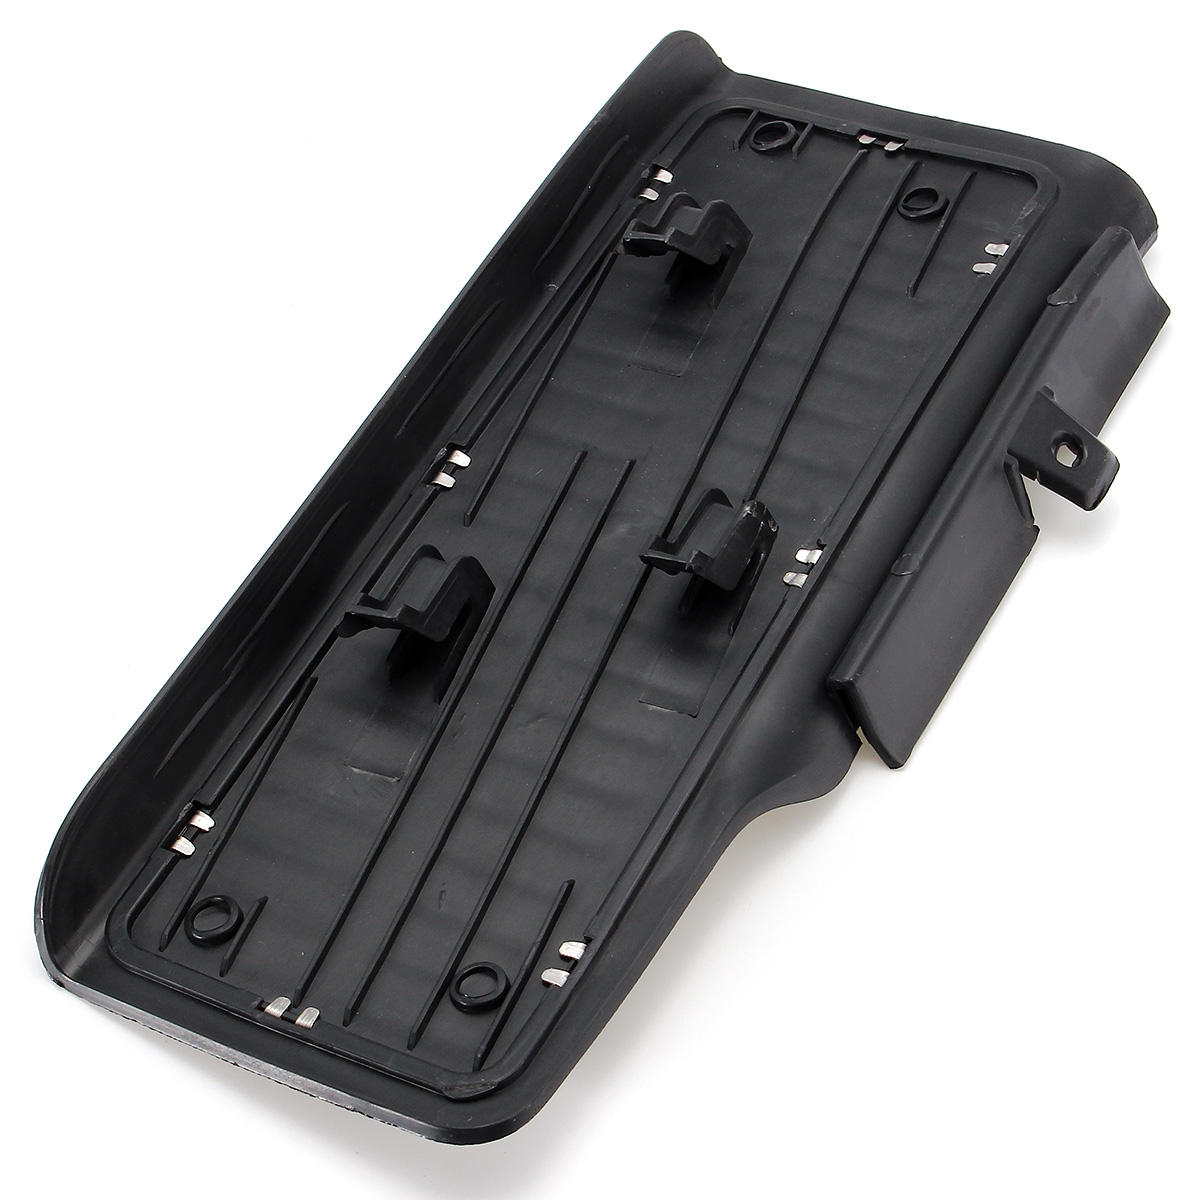 Feature:Model: 497597Condition: Brand New and High QualityColor: BlackSilverMaterial: ABS Plastic and Aluminum alloySize: 28.5x13cm(LxW)Quantity: 1pcFitment:Fits for Volkswagen Jetta MK6 2011-2016Package Included:1 X Dead Pedal